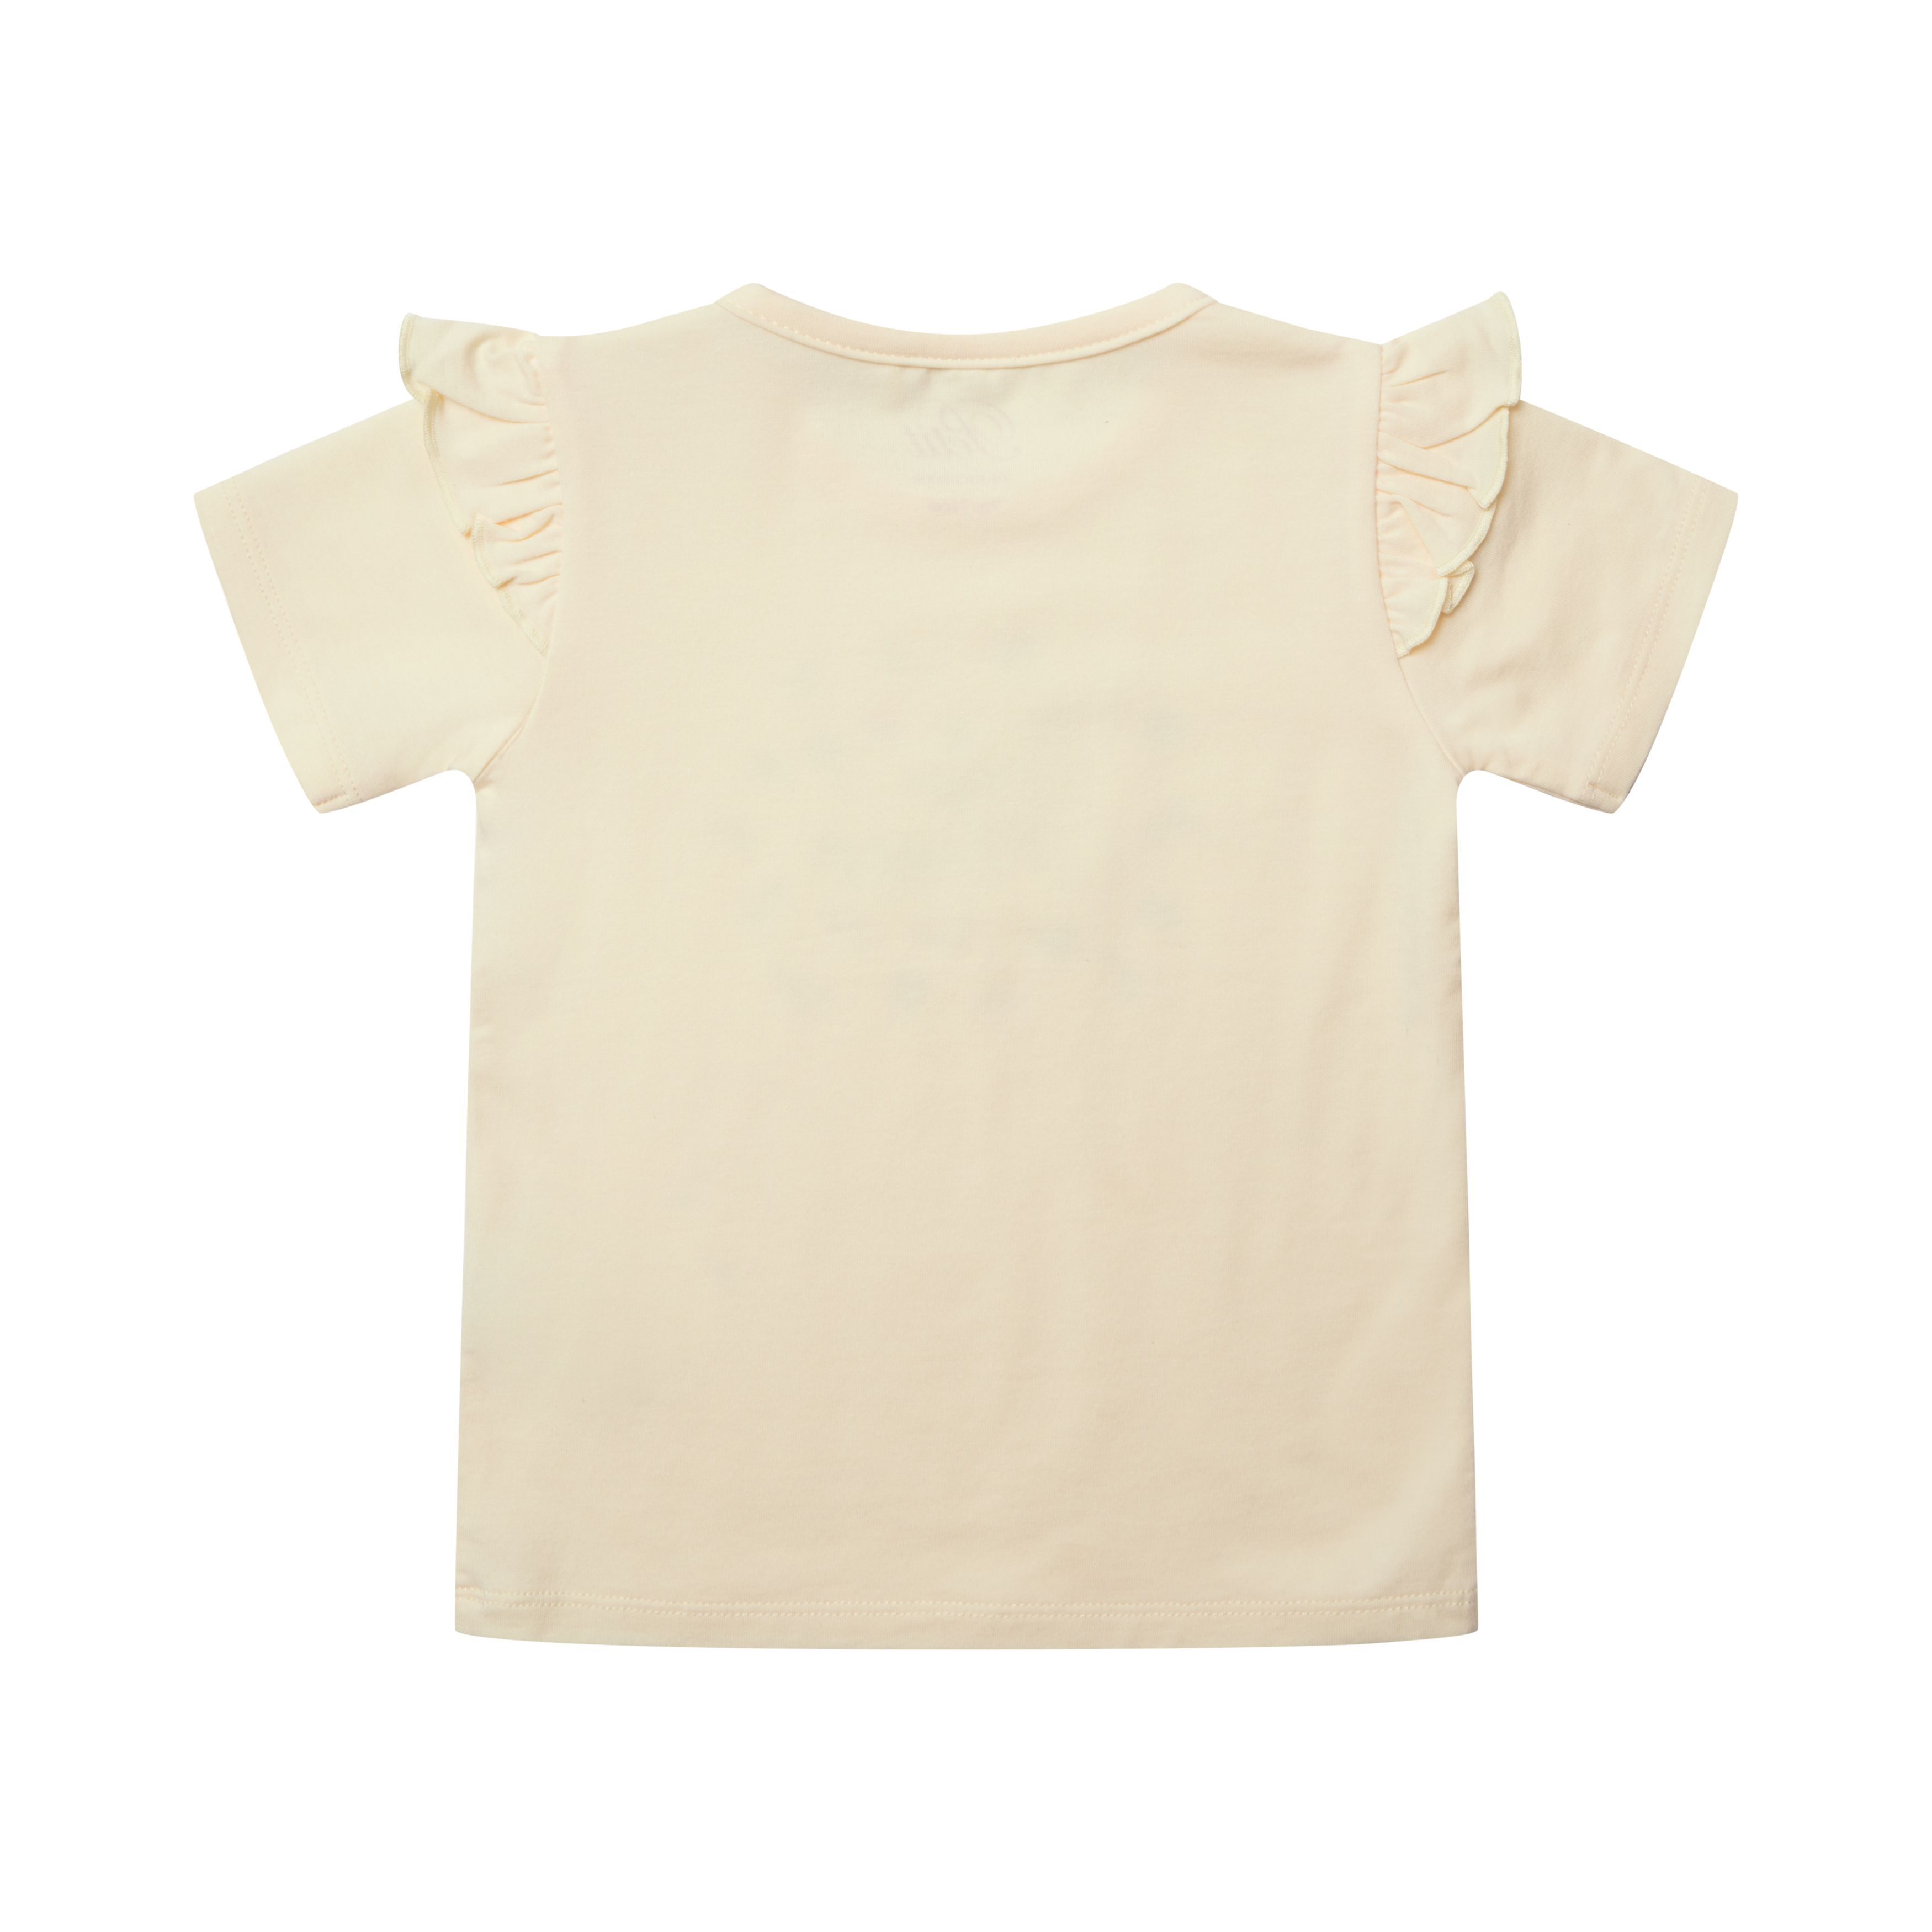 Petit by Sofie Schnoor Penelope t-shirt, off white, 92